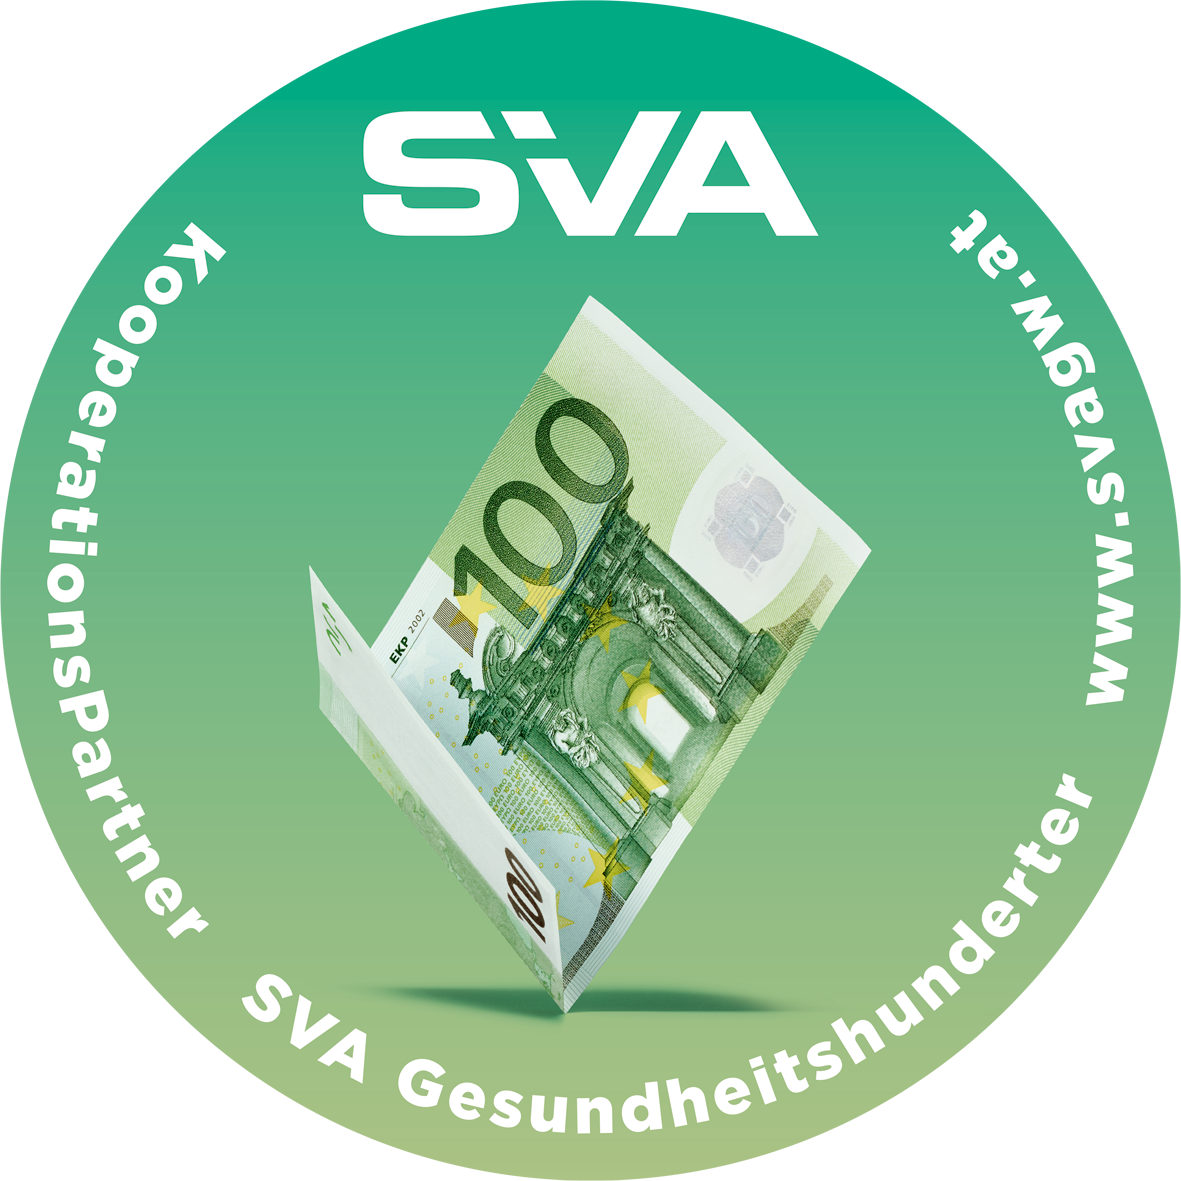 SVA_Button-Gesundheitshunderter_1_5cm-transparent